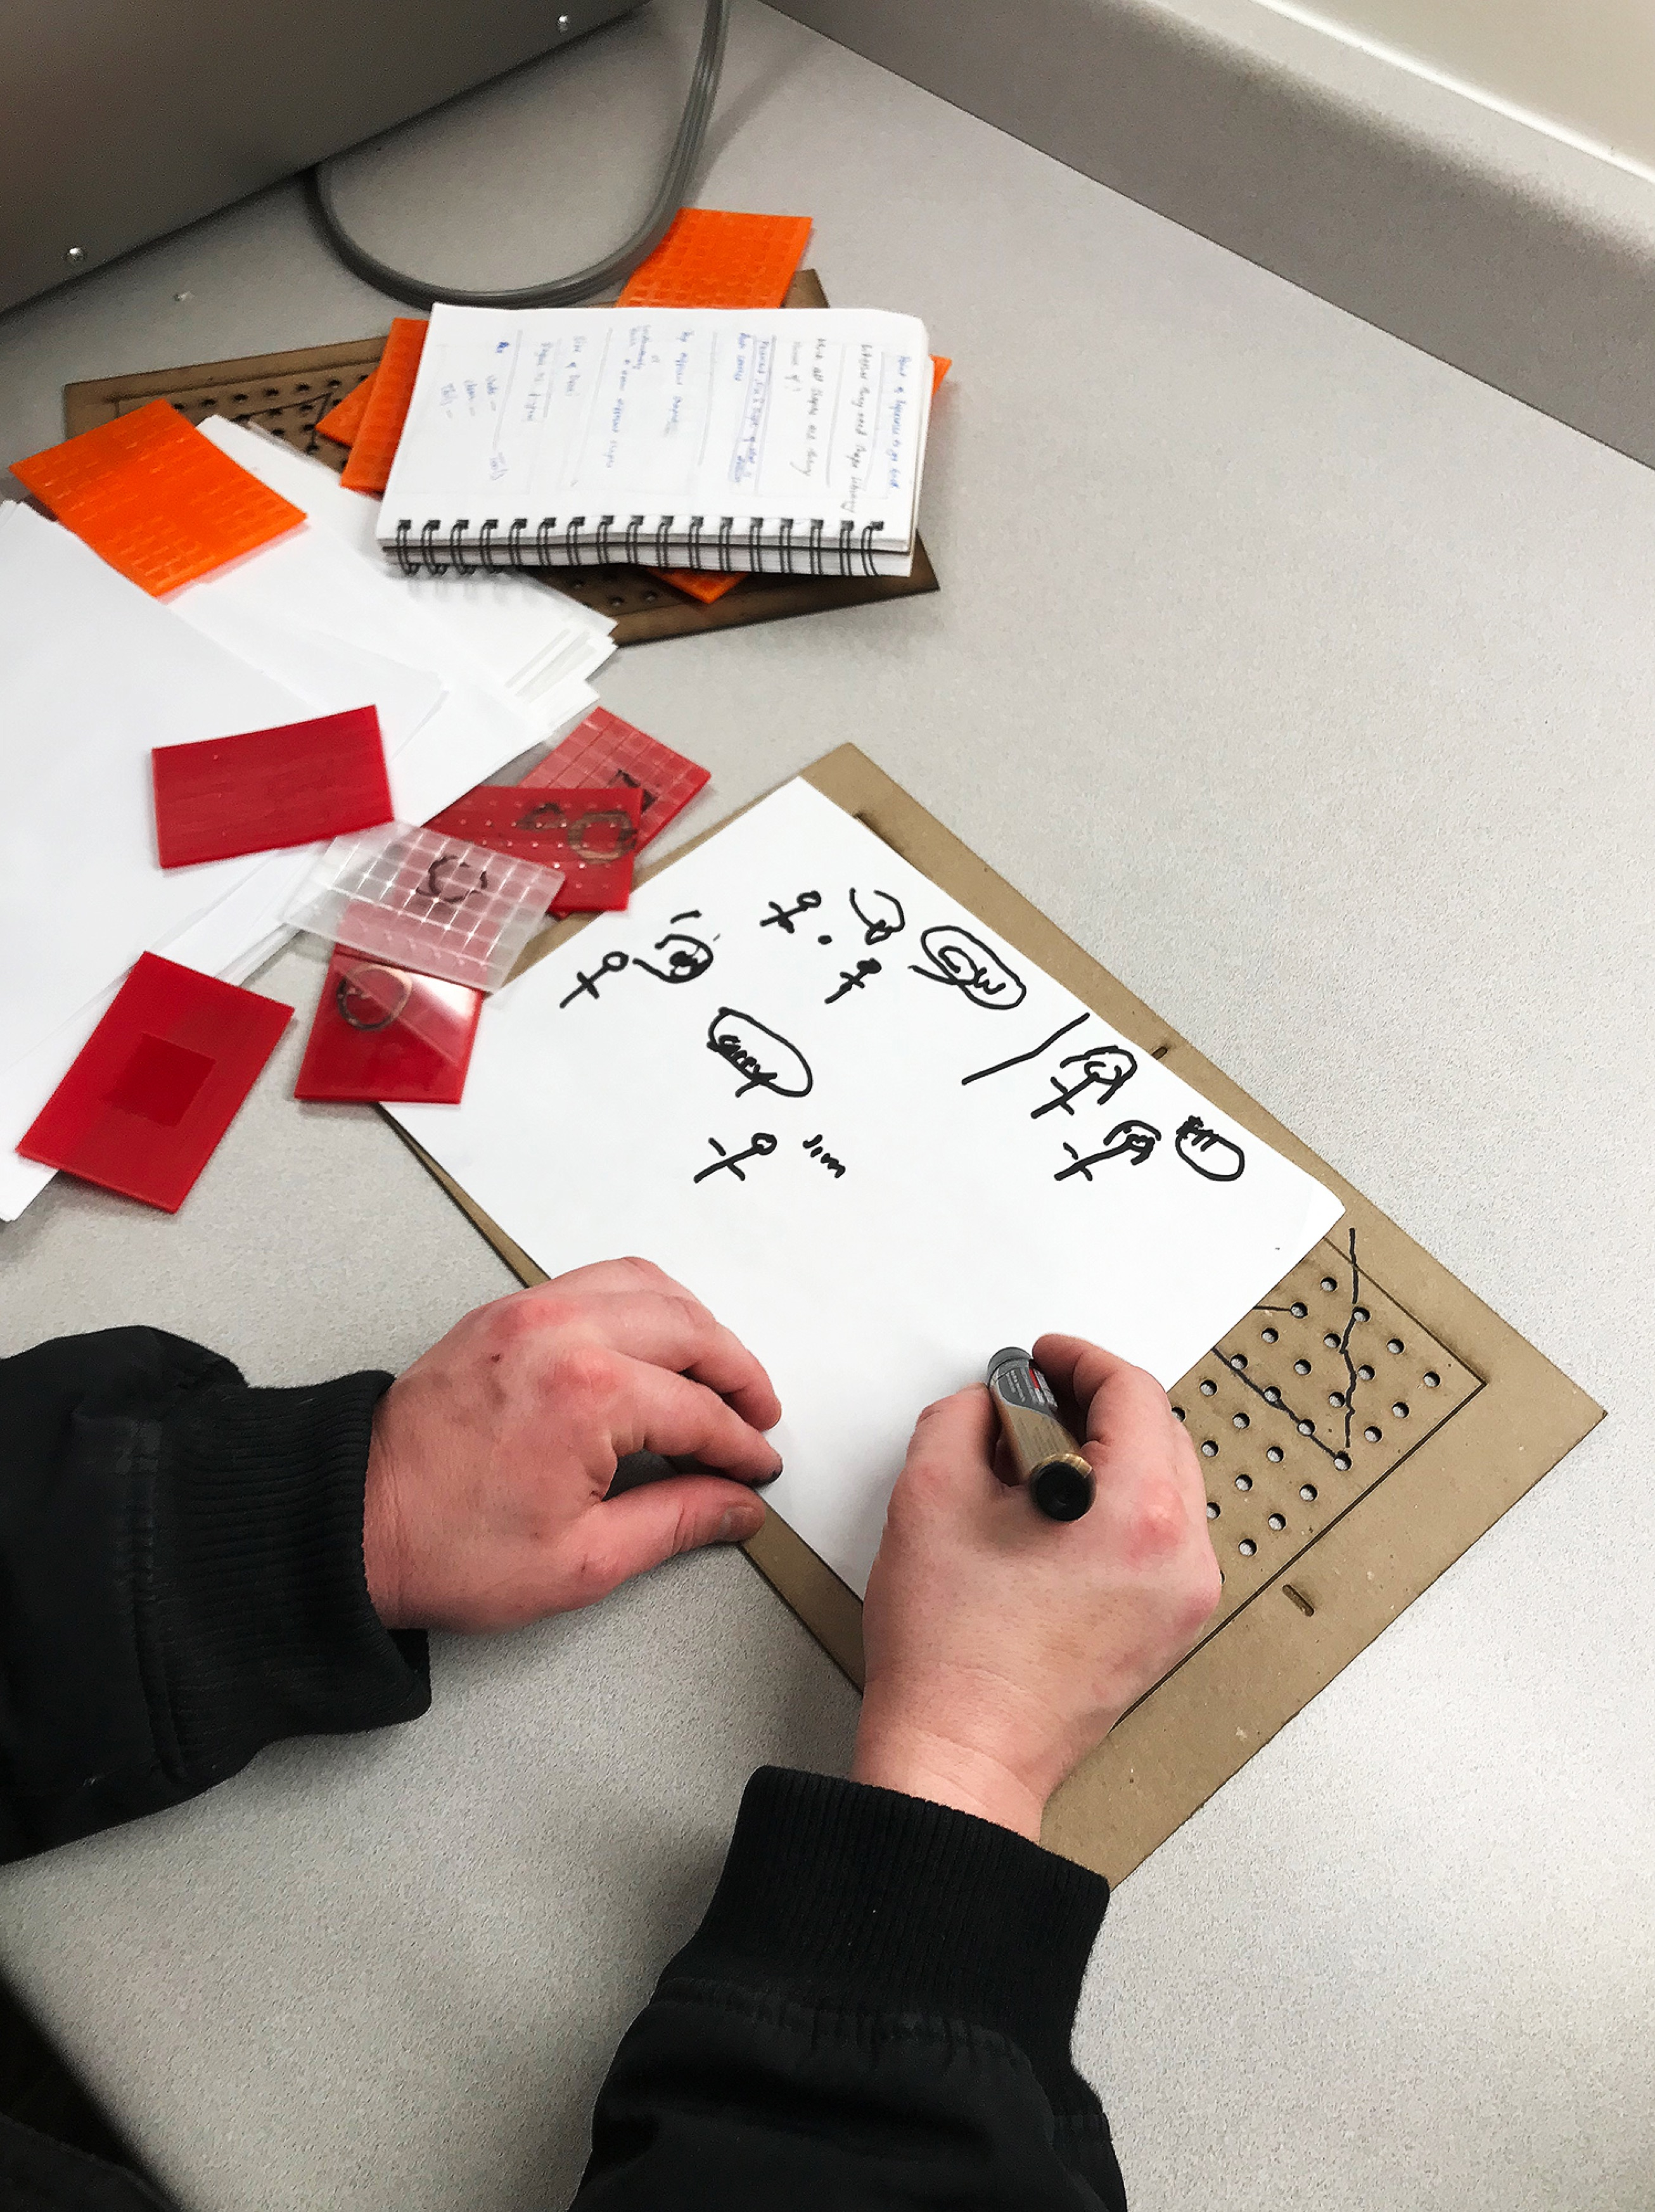 Contextual Inquiry image showing a participant drawing a stick figure with a pen to convey an idea.